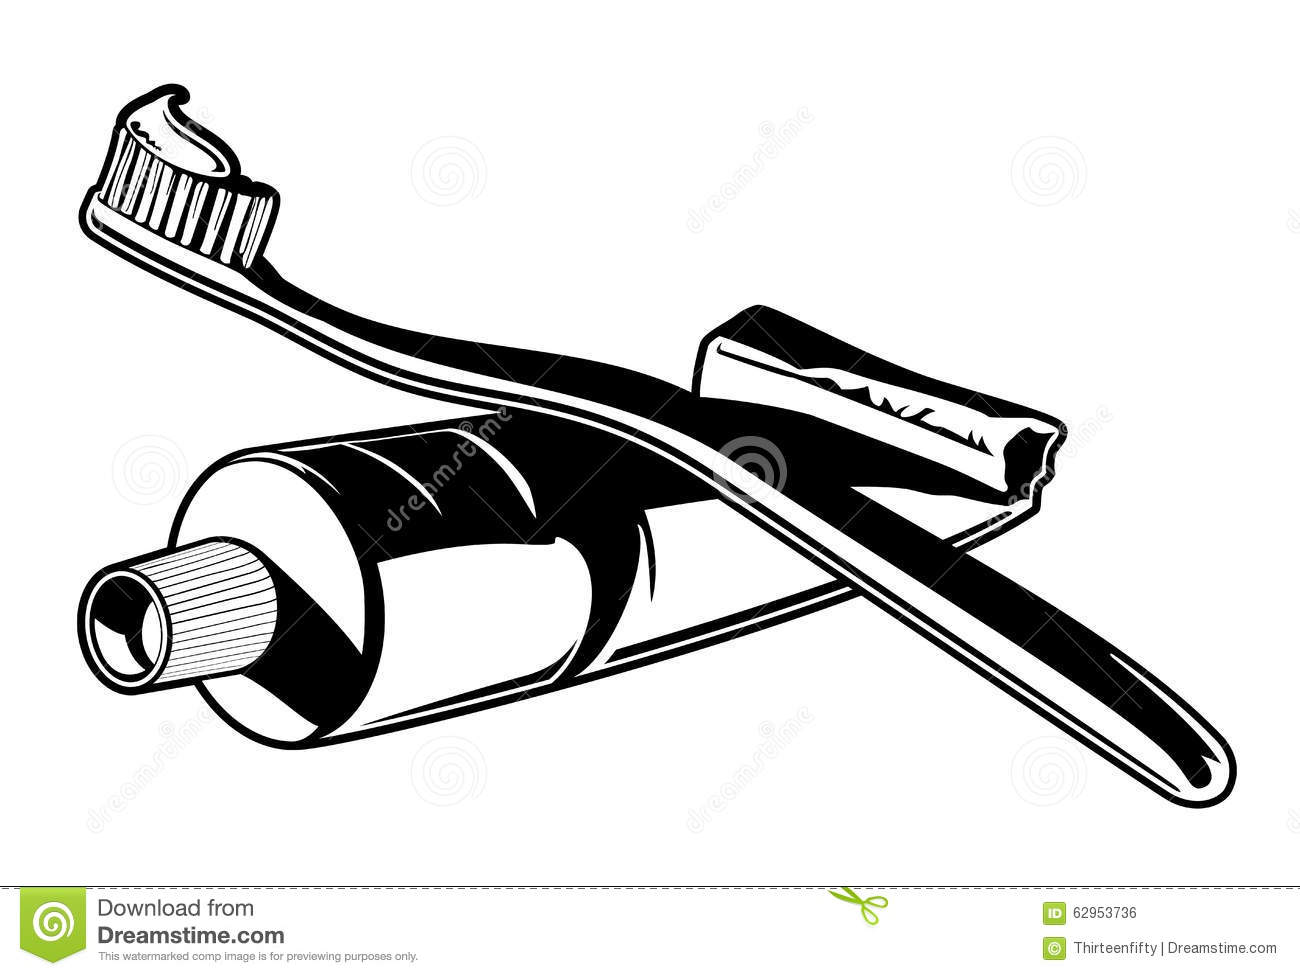 Female Genital Mutilation besides Lesson 1 Section 2 furthermore doggroomingparadise co moreover Stock Illustration Toothbrush Toothpaste Vector Black White Illustration Image62953736 further Periodontia instruments72. on dental equipment